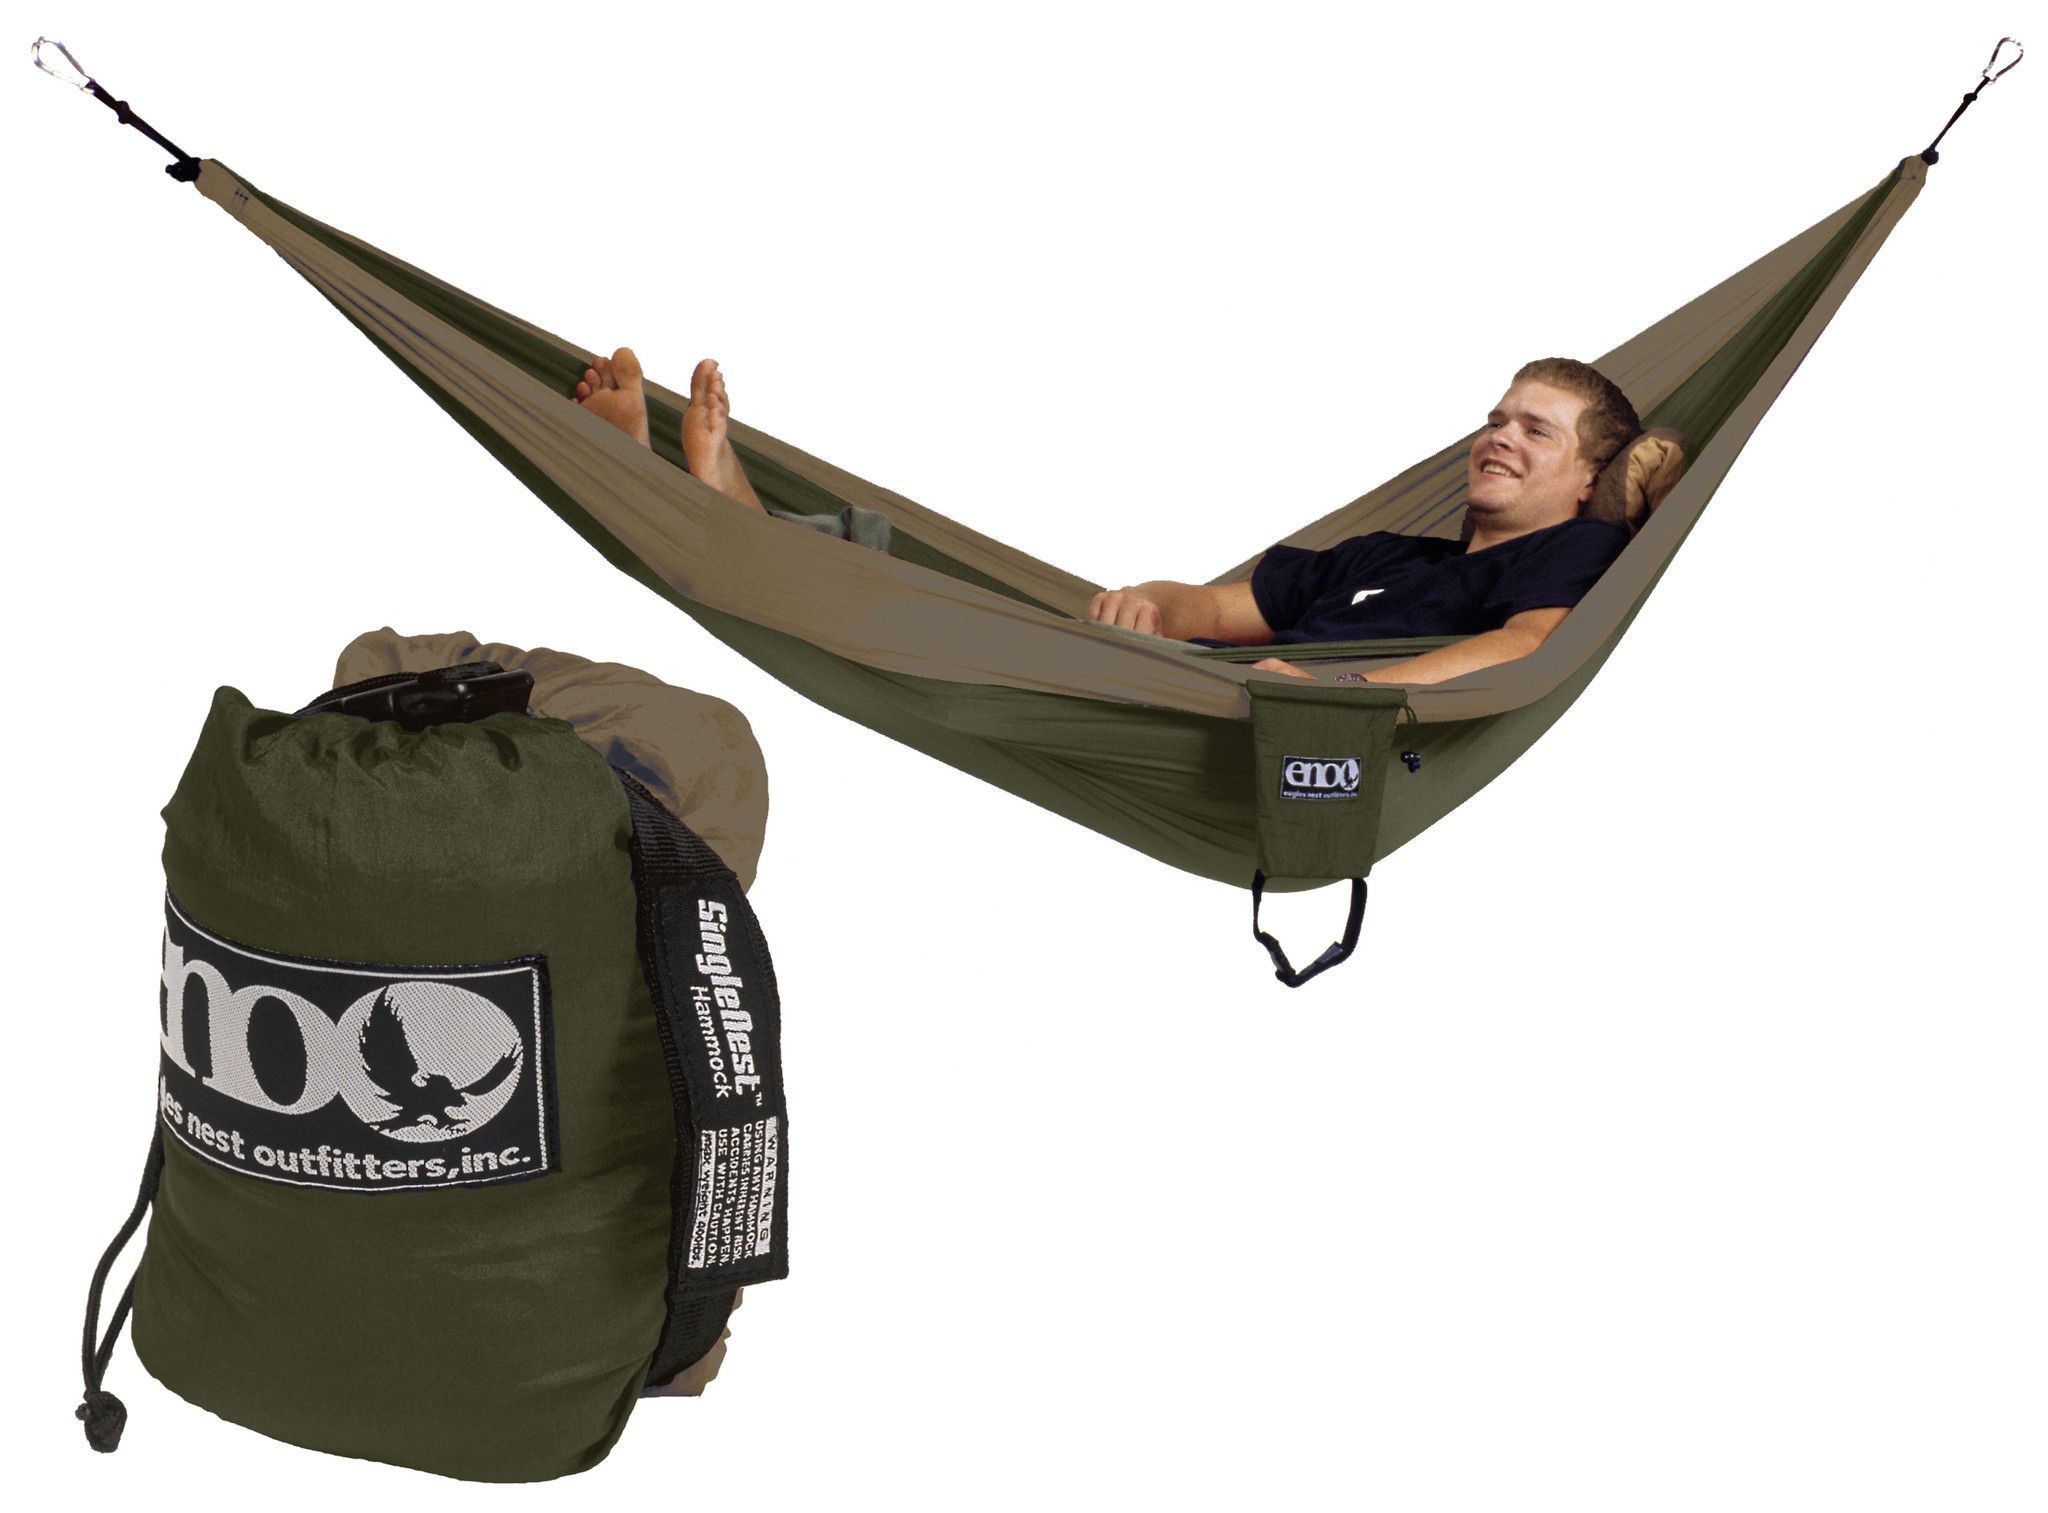 this straps i as double navy sleeping would tent to stars camping within had opposed under eno royal you bug net go if the prefer doublenest hammock with a pin